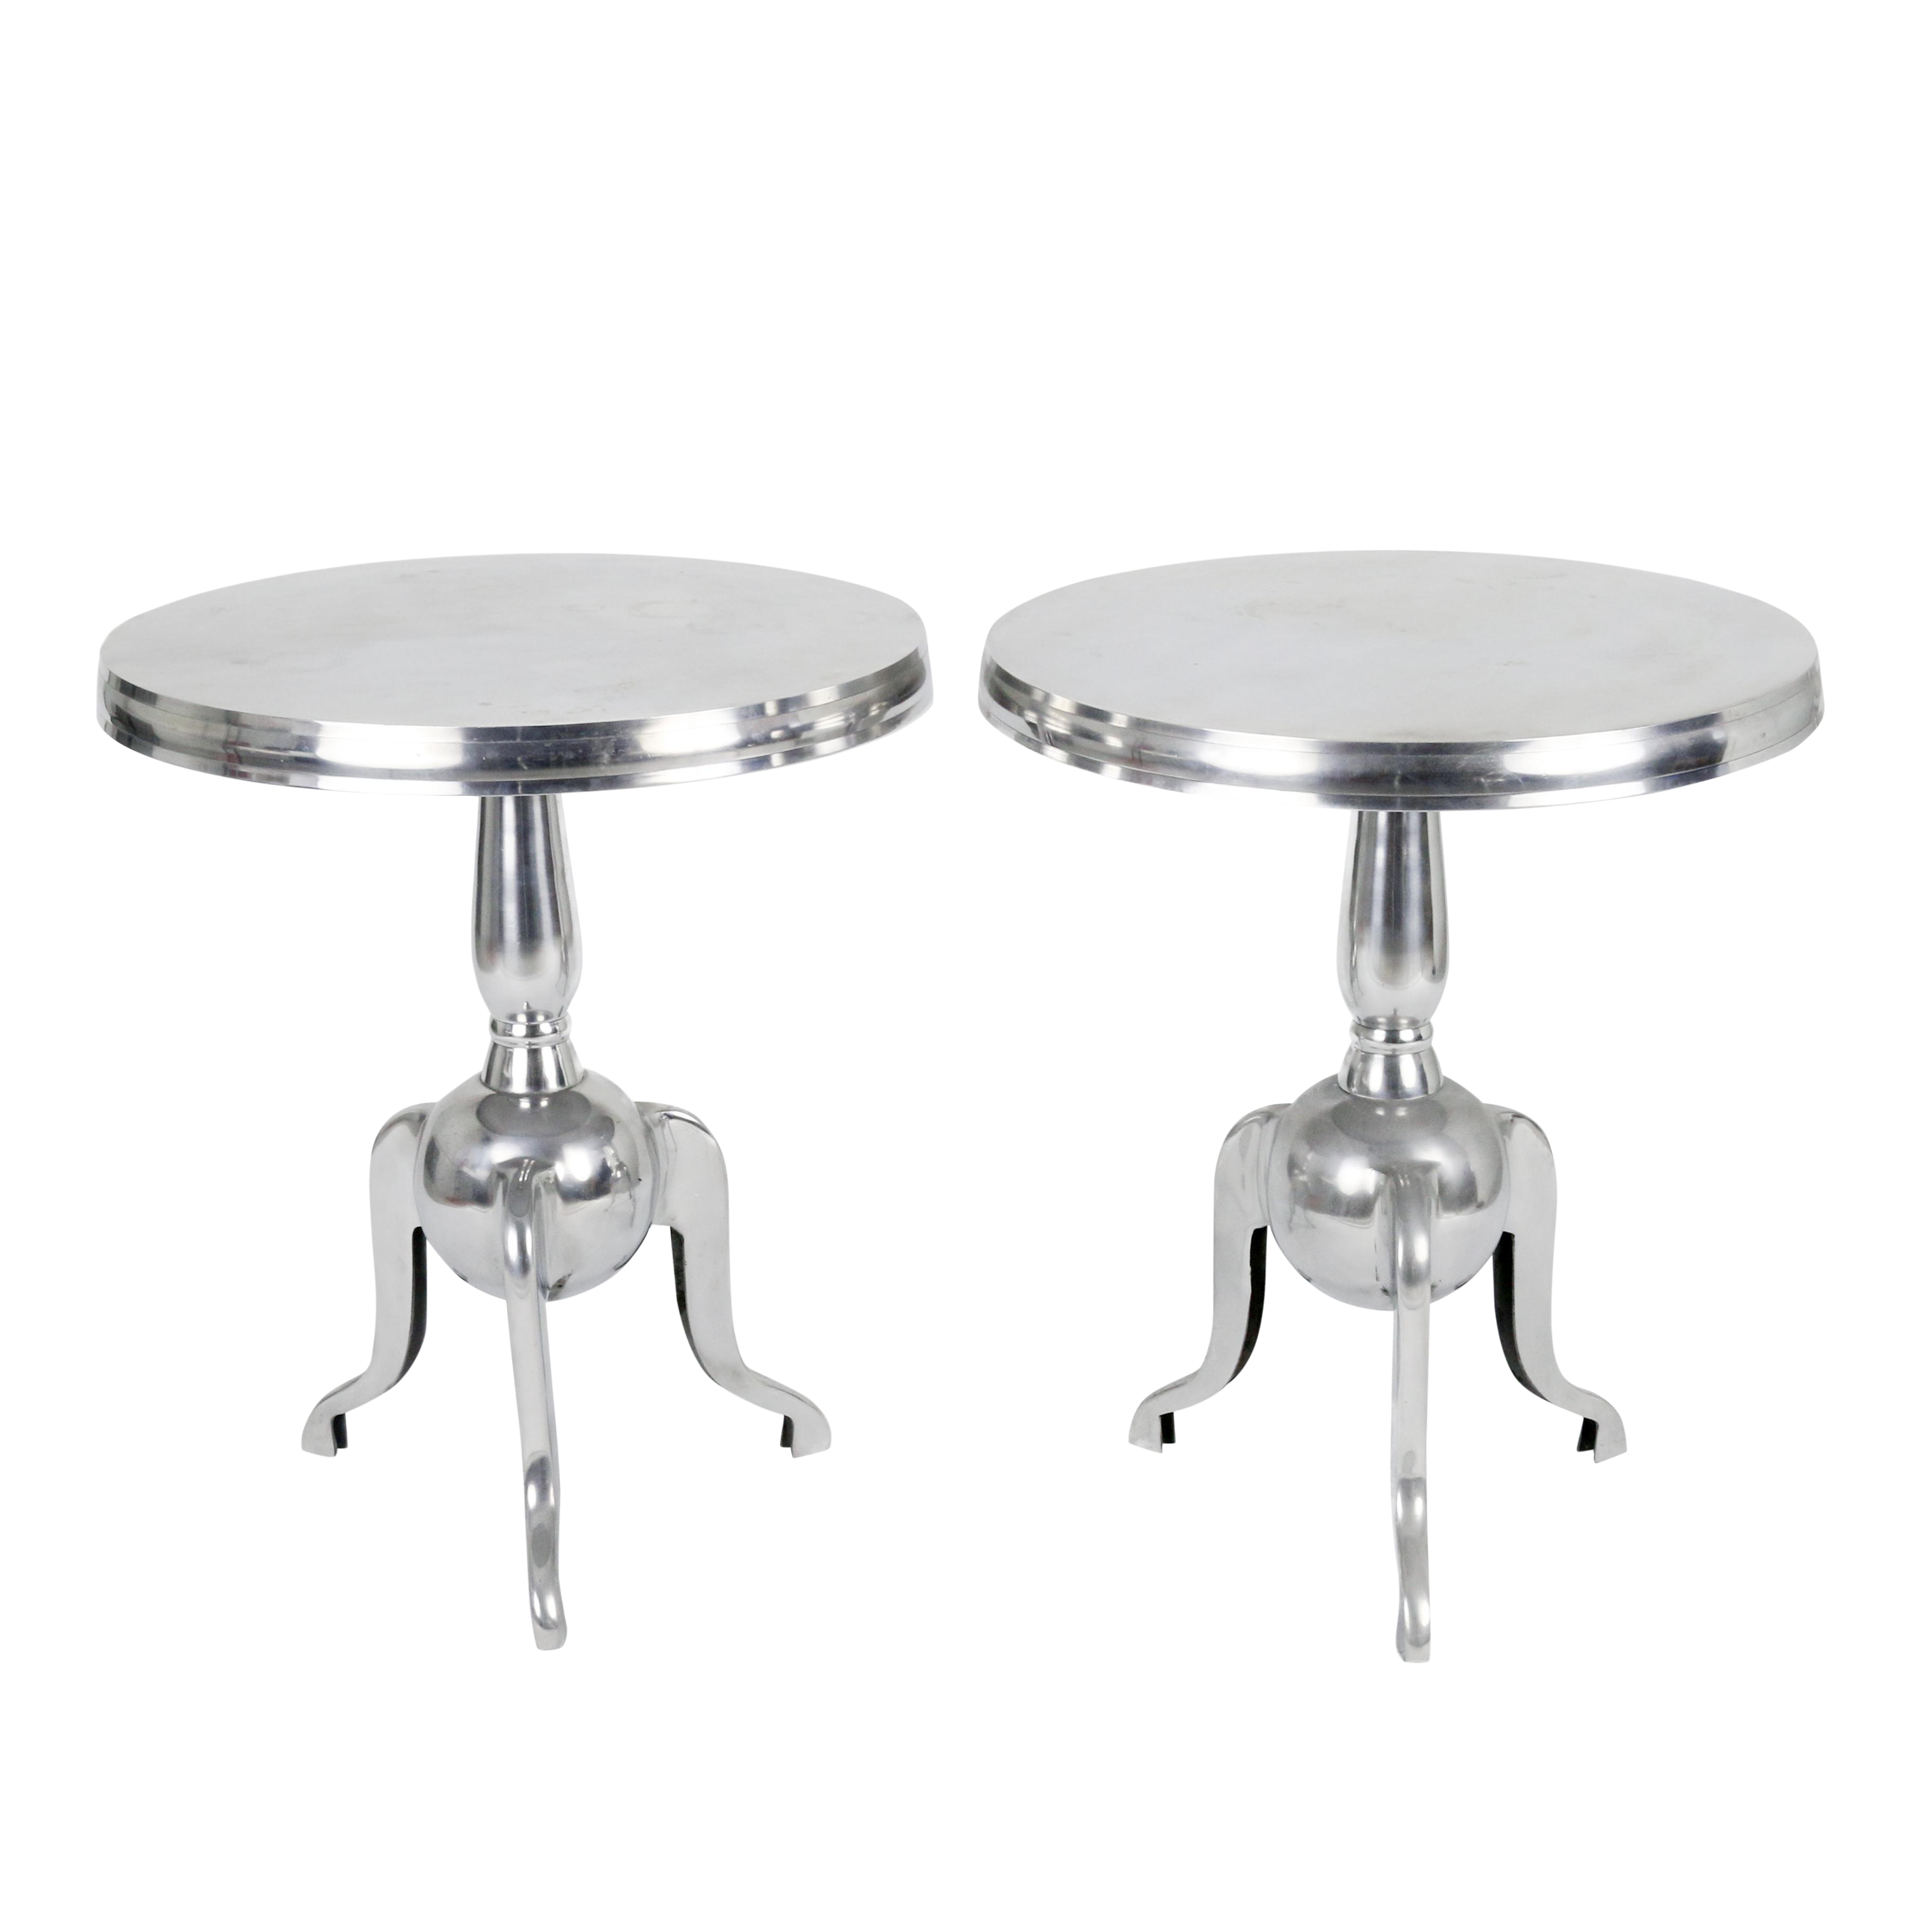 pottery barn silver aluminum pedestal accent tables pair chairish table room essentials trestle round patio cover sofa with stools coffee bases for granite tops outdoor nic